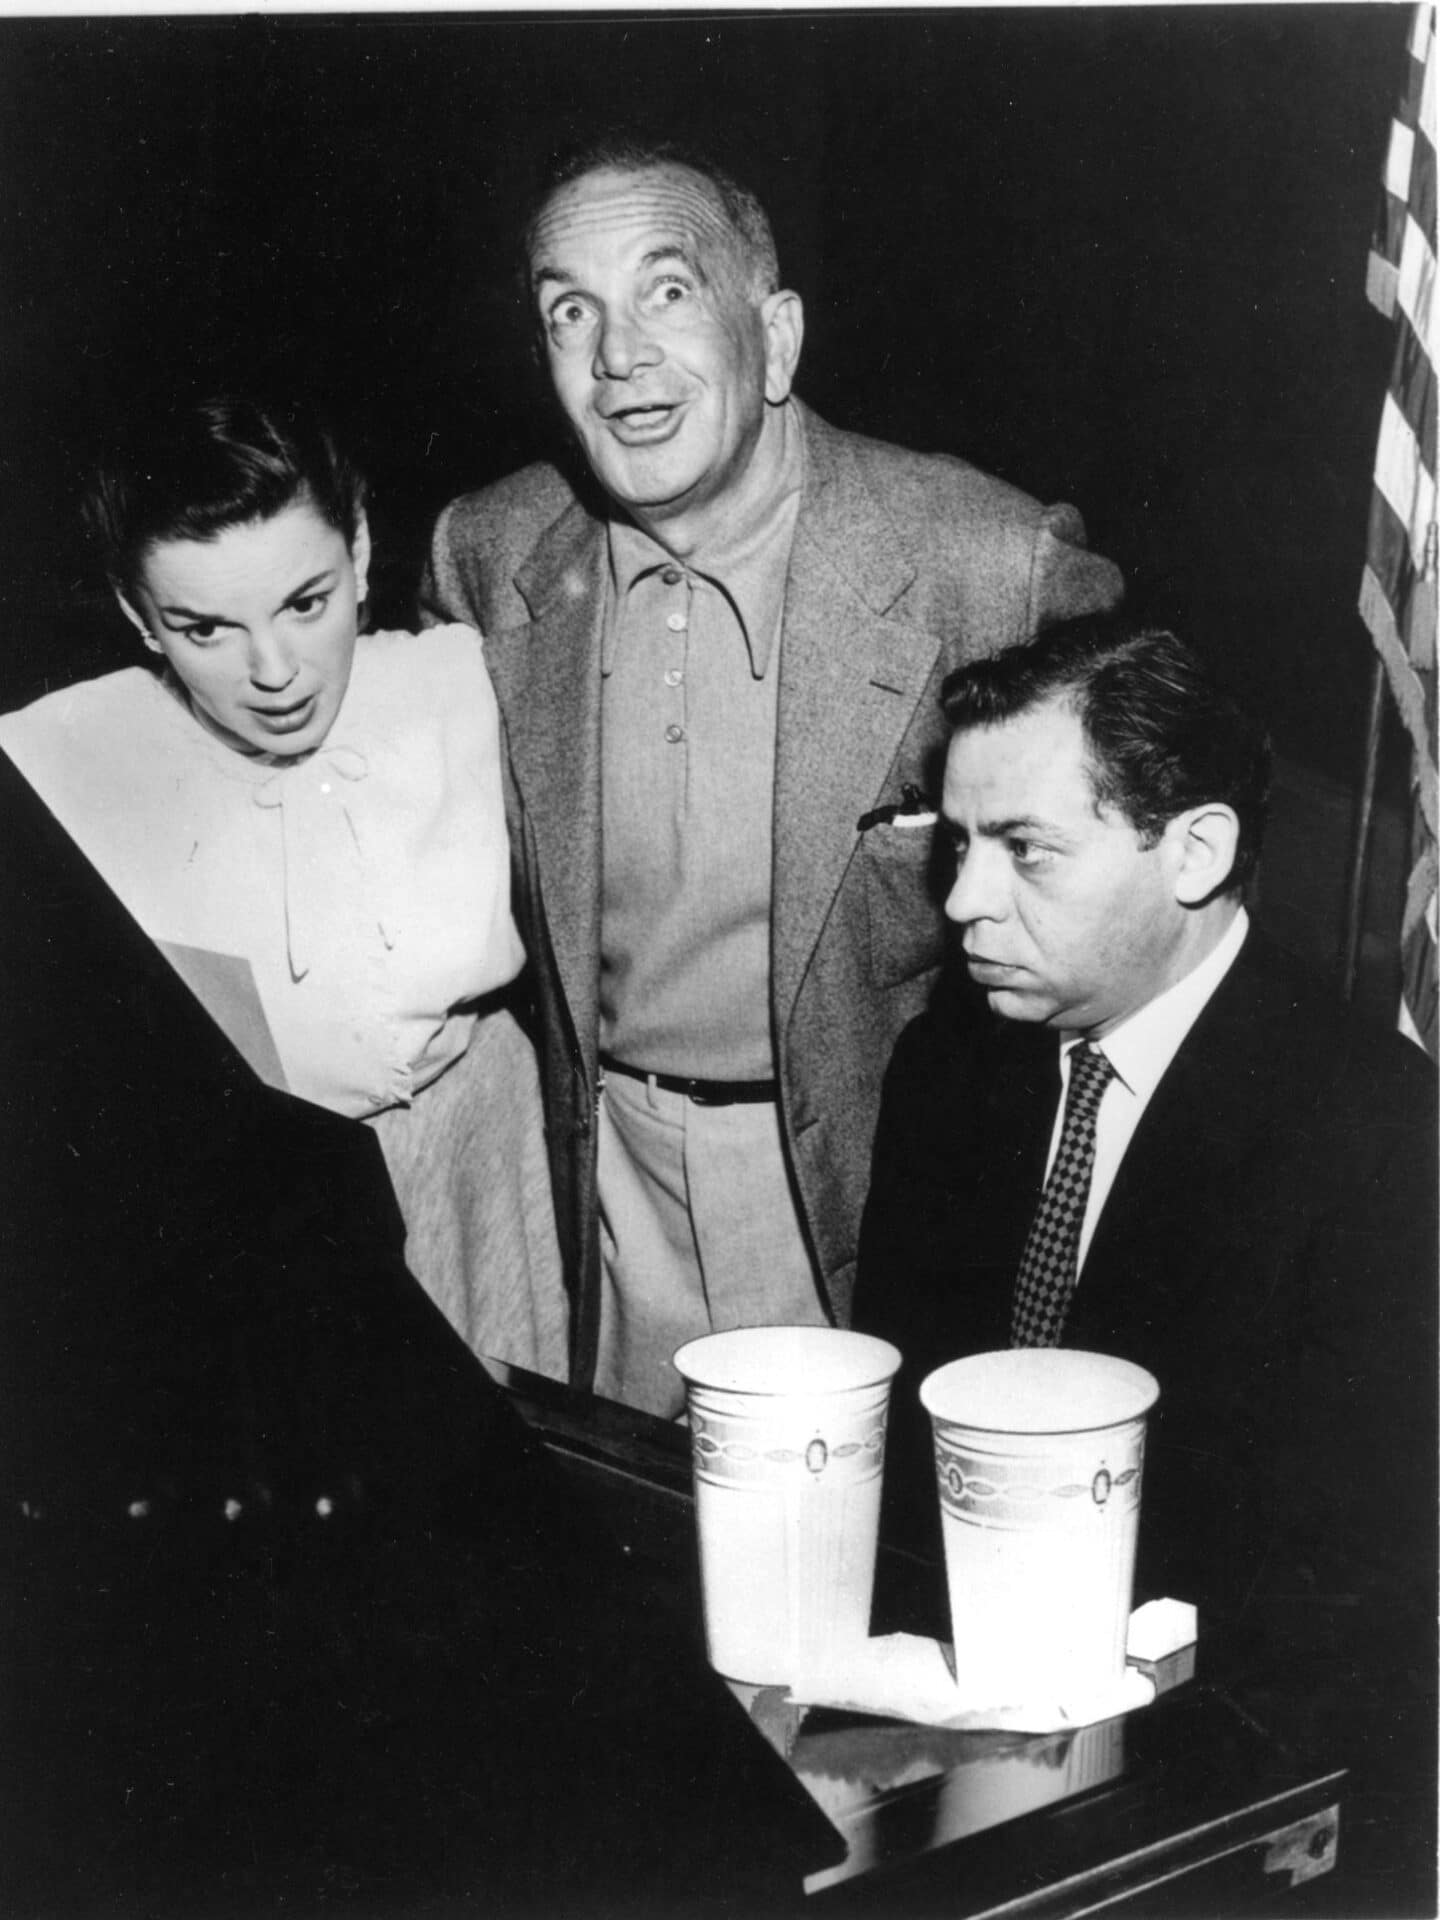 Judy Garland, Al Jolson, and pianist Oscar Levant on stage at Post 519 playing on our 1905 Steinway.